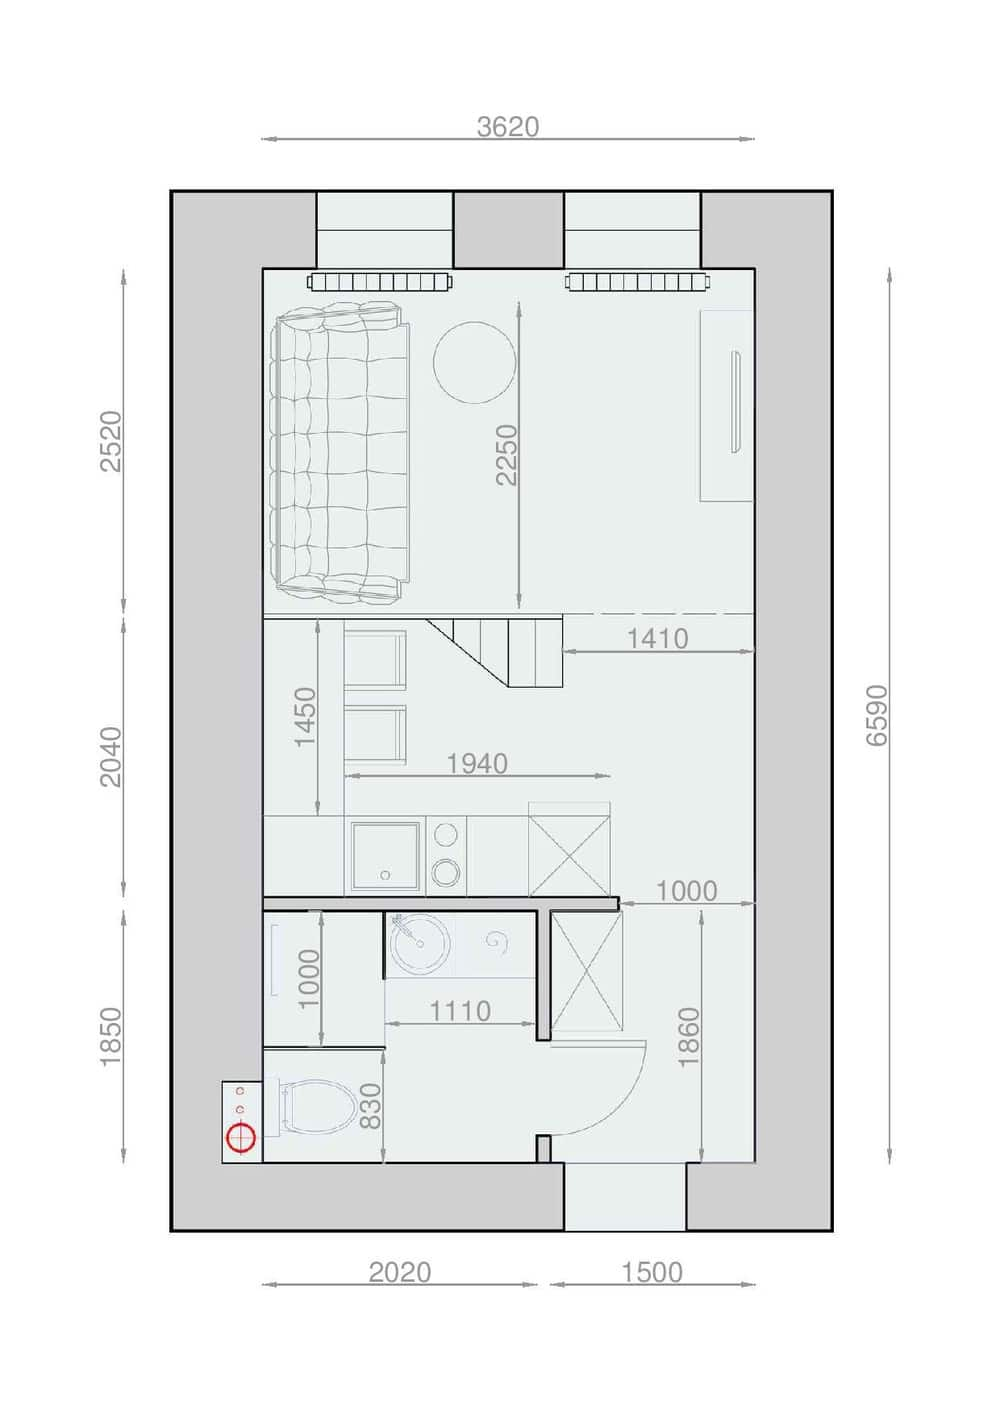 plans pour am nager et d corer un appartement de 30m2